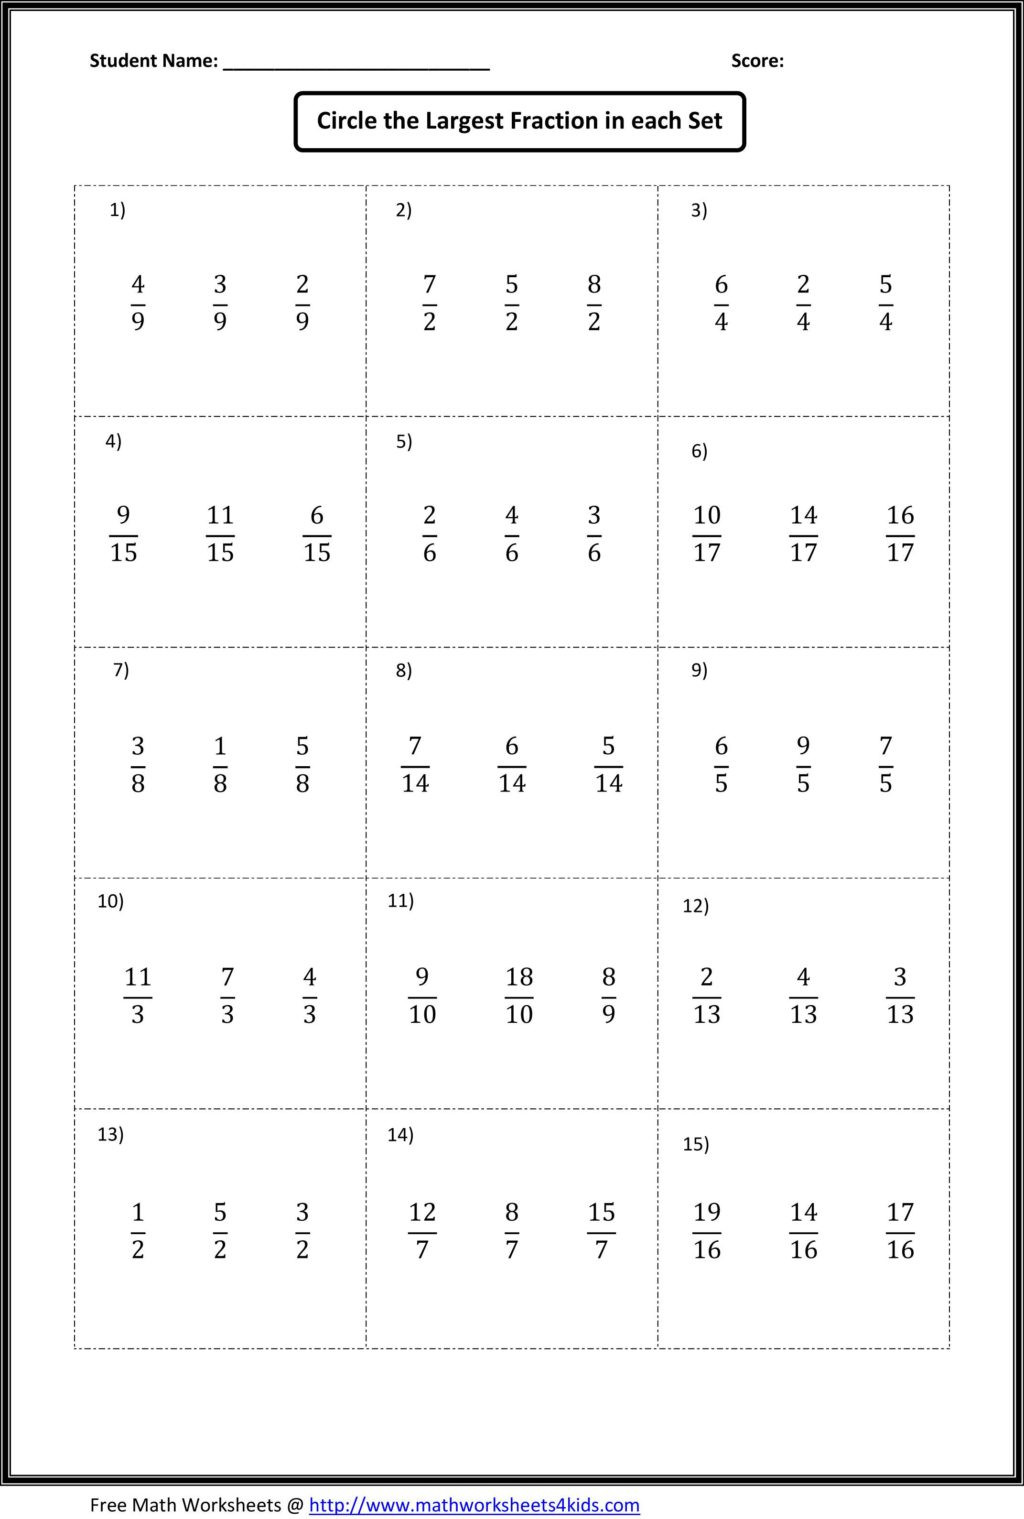 Comparing Fractions Worksheet 4th Grade Worksheet Worksheet Paring Fractions Worksheets Find